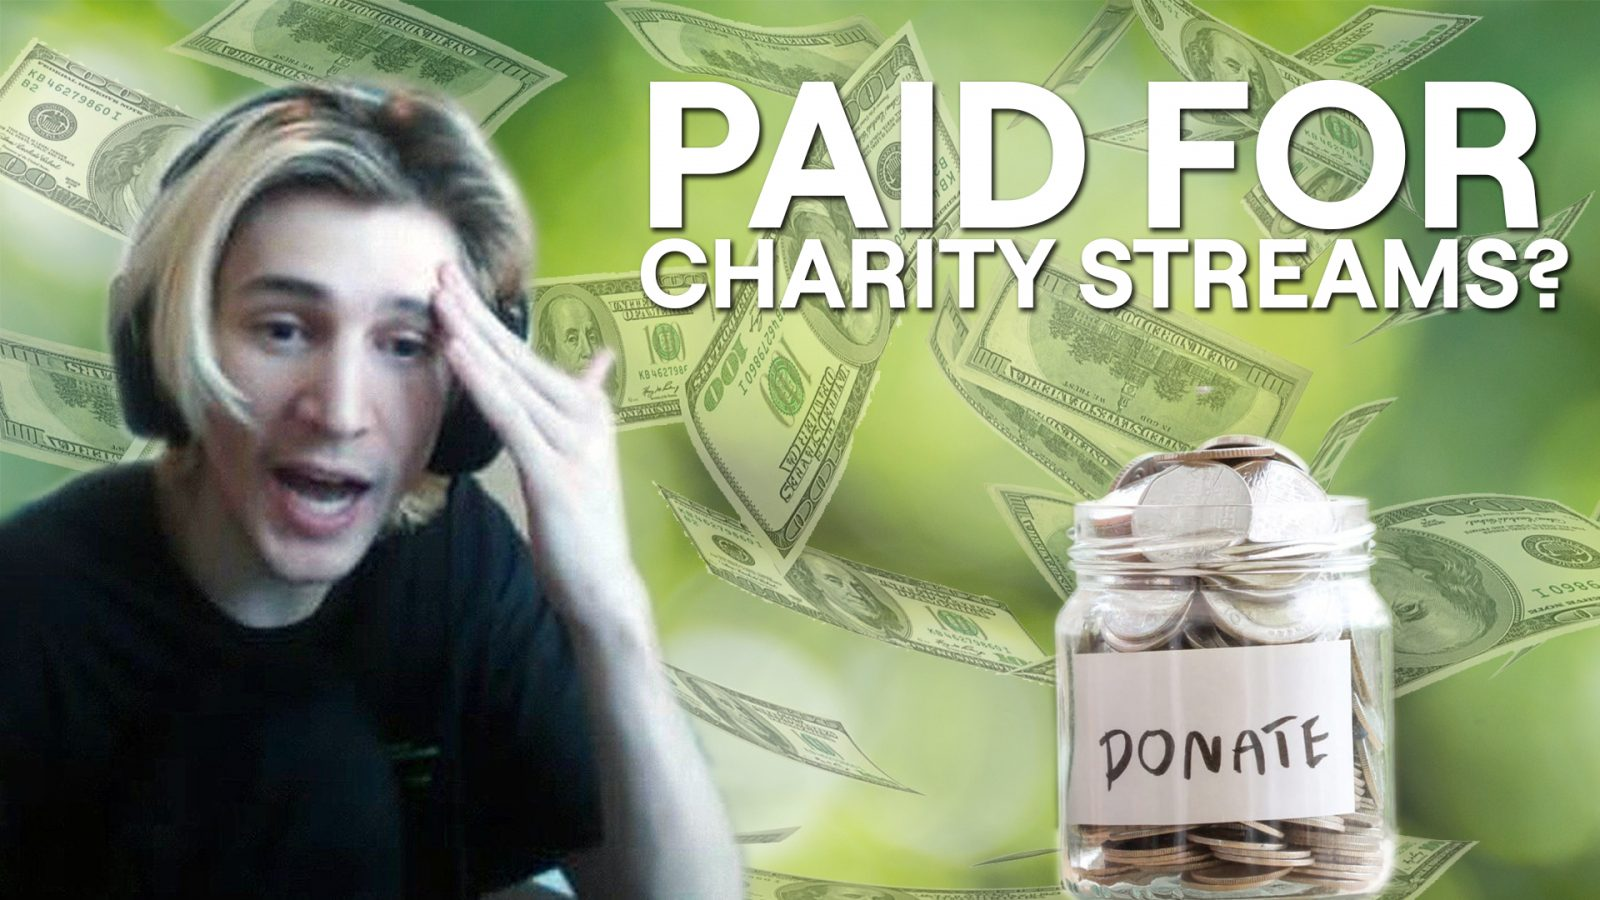 Are Streamers Paid to do Charity Streams?